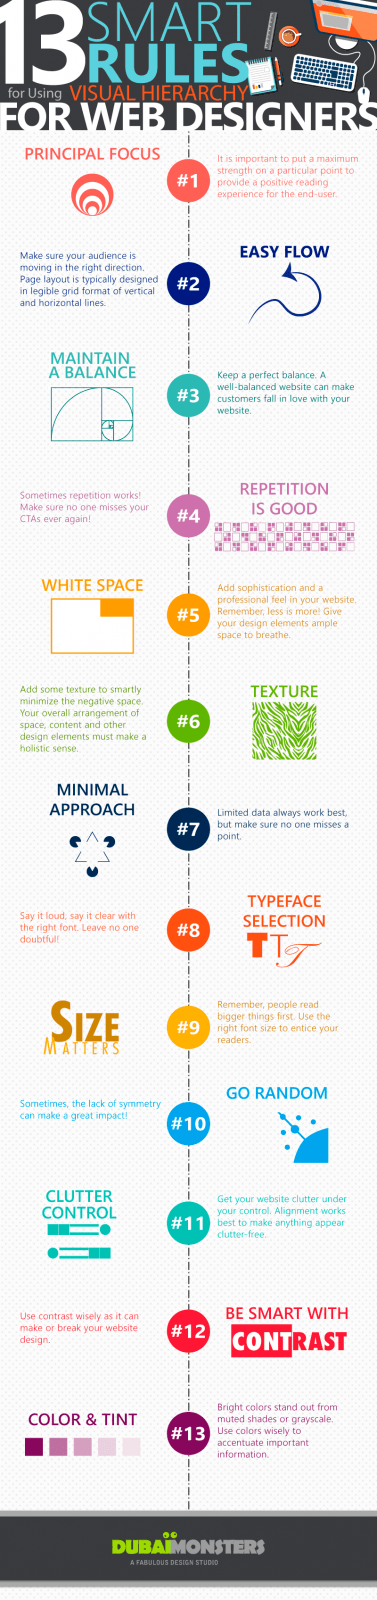 13-Smart-Rules-for-Using-Visual-Hierarchy-for-Web-Designers2